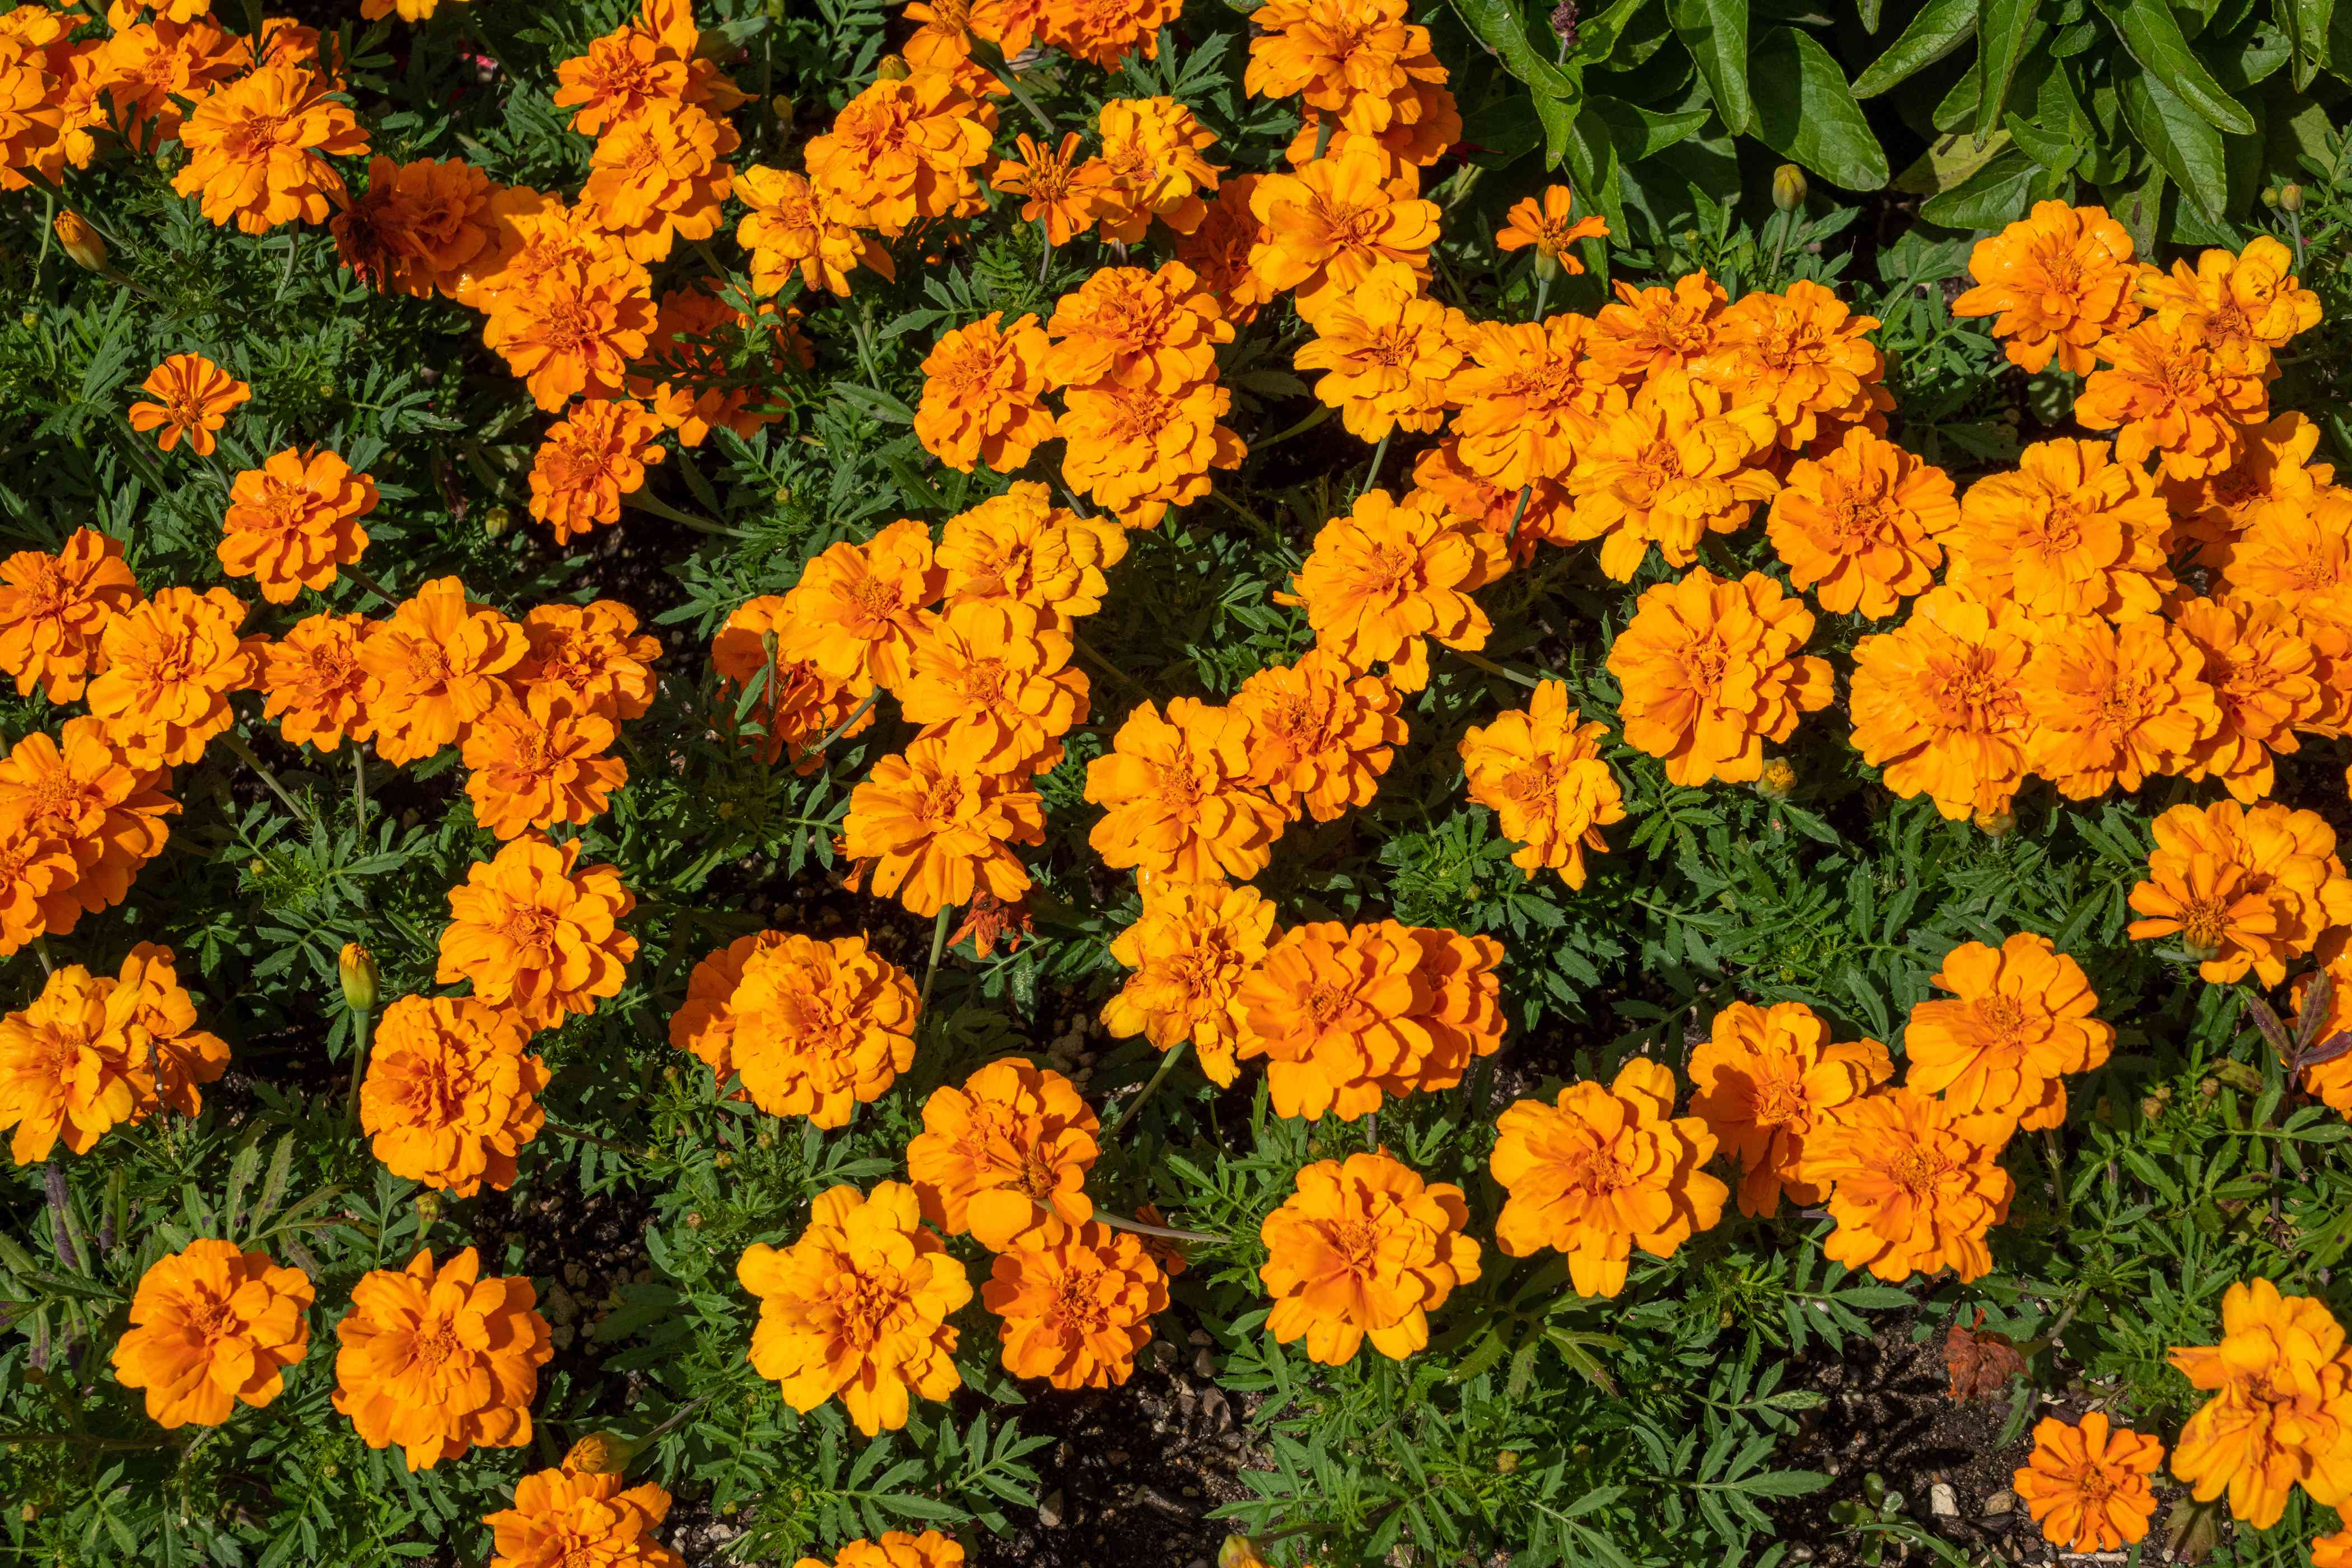 Marigold plant with bright orange ruffled flowers in sunlight